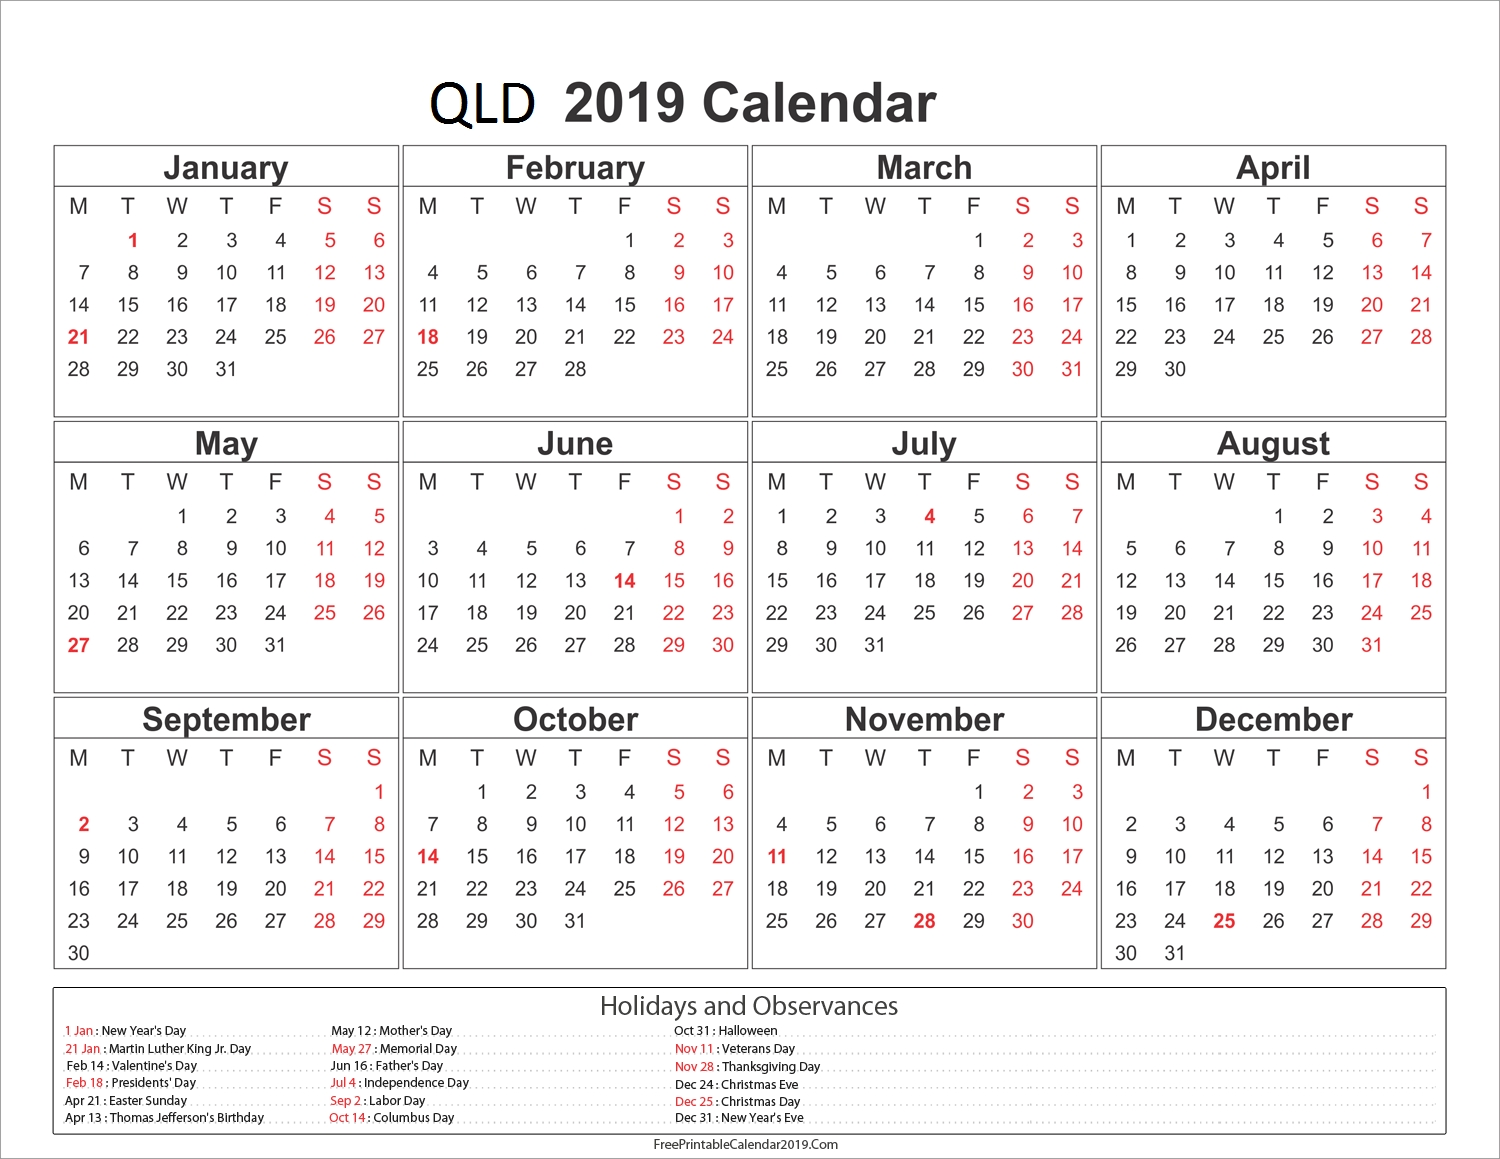 Free Download Printable Yearly Calendar 2019 Template With Qld 2019 Calendar Qld Template